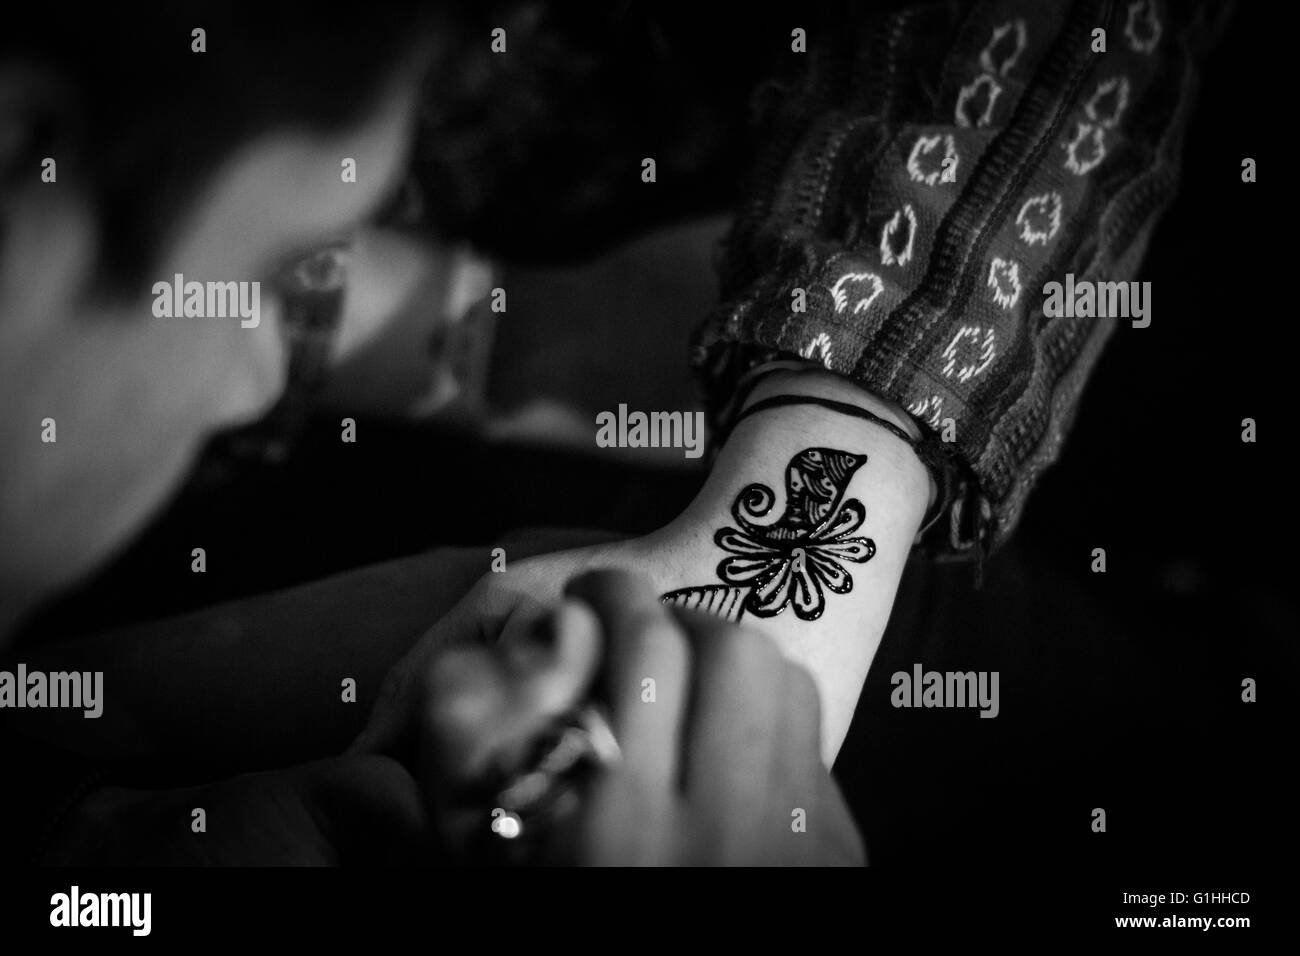 A Boy Is Painting A Mehndi Henna Tattoo Onto The Forearm Of A